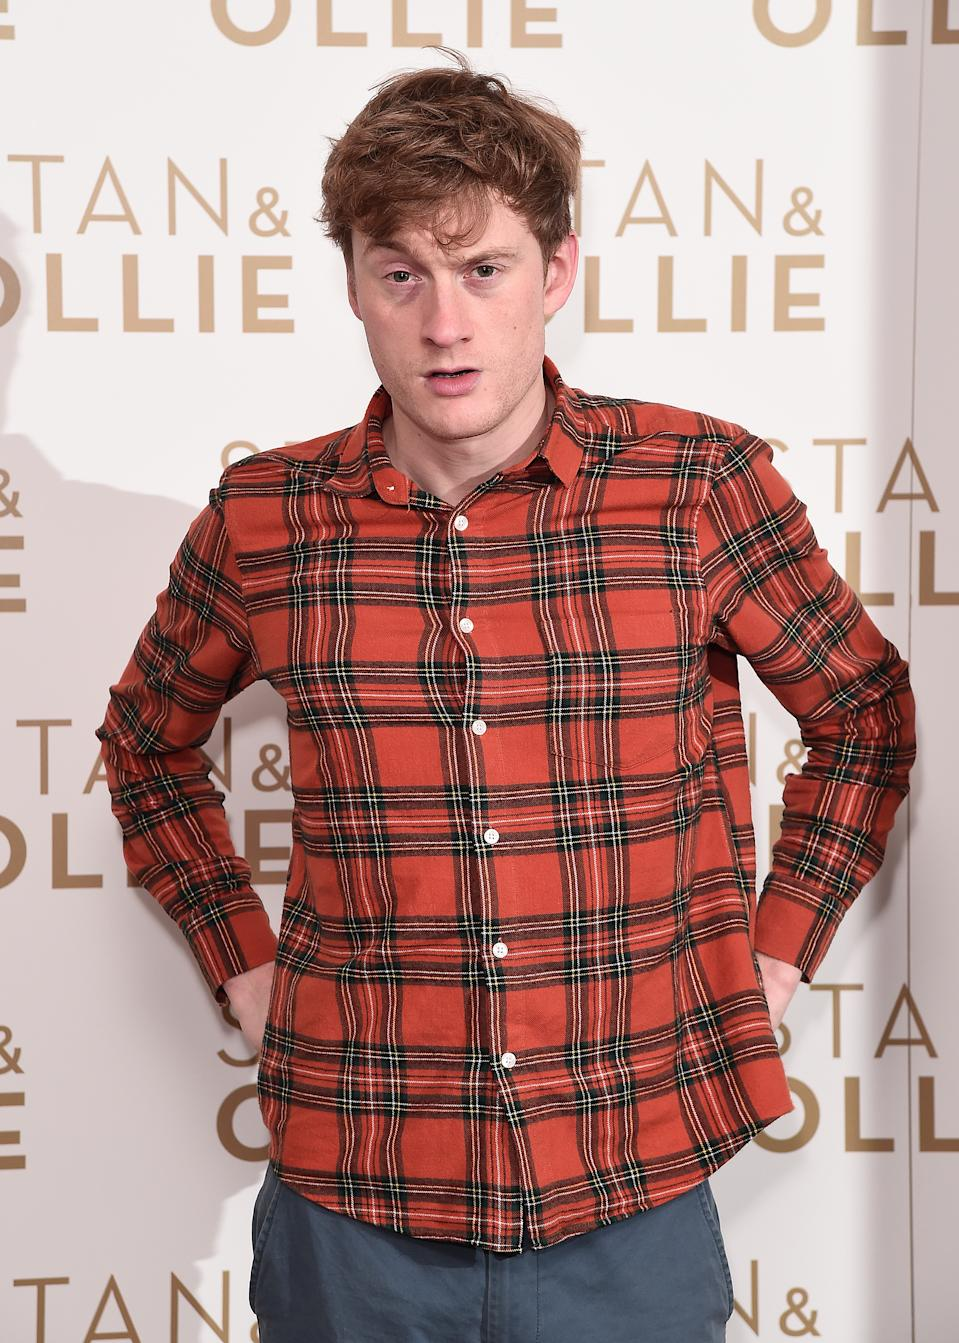 LONDON, ENGLAND - JANUARY 08: James Acaster attends special preview screening of Stan & Ollie at Soho Hotel on January 08, 2019 in London, England. (Photo by Eamonn M. McCormack/Getty Images for eONE)